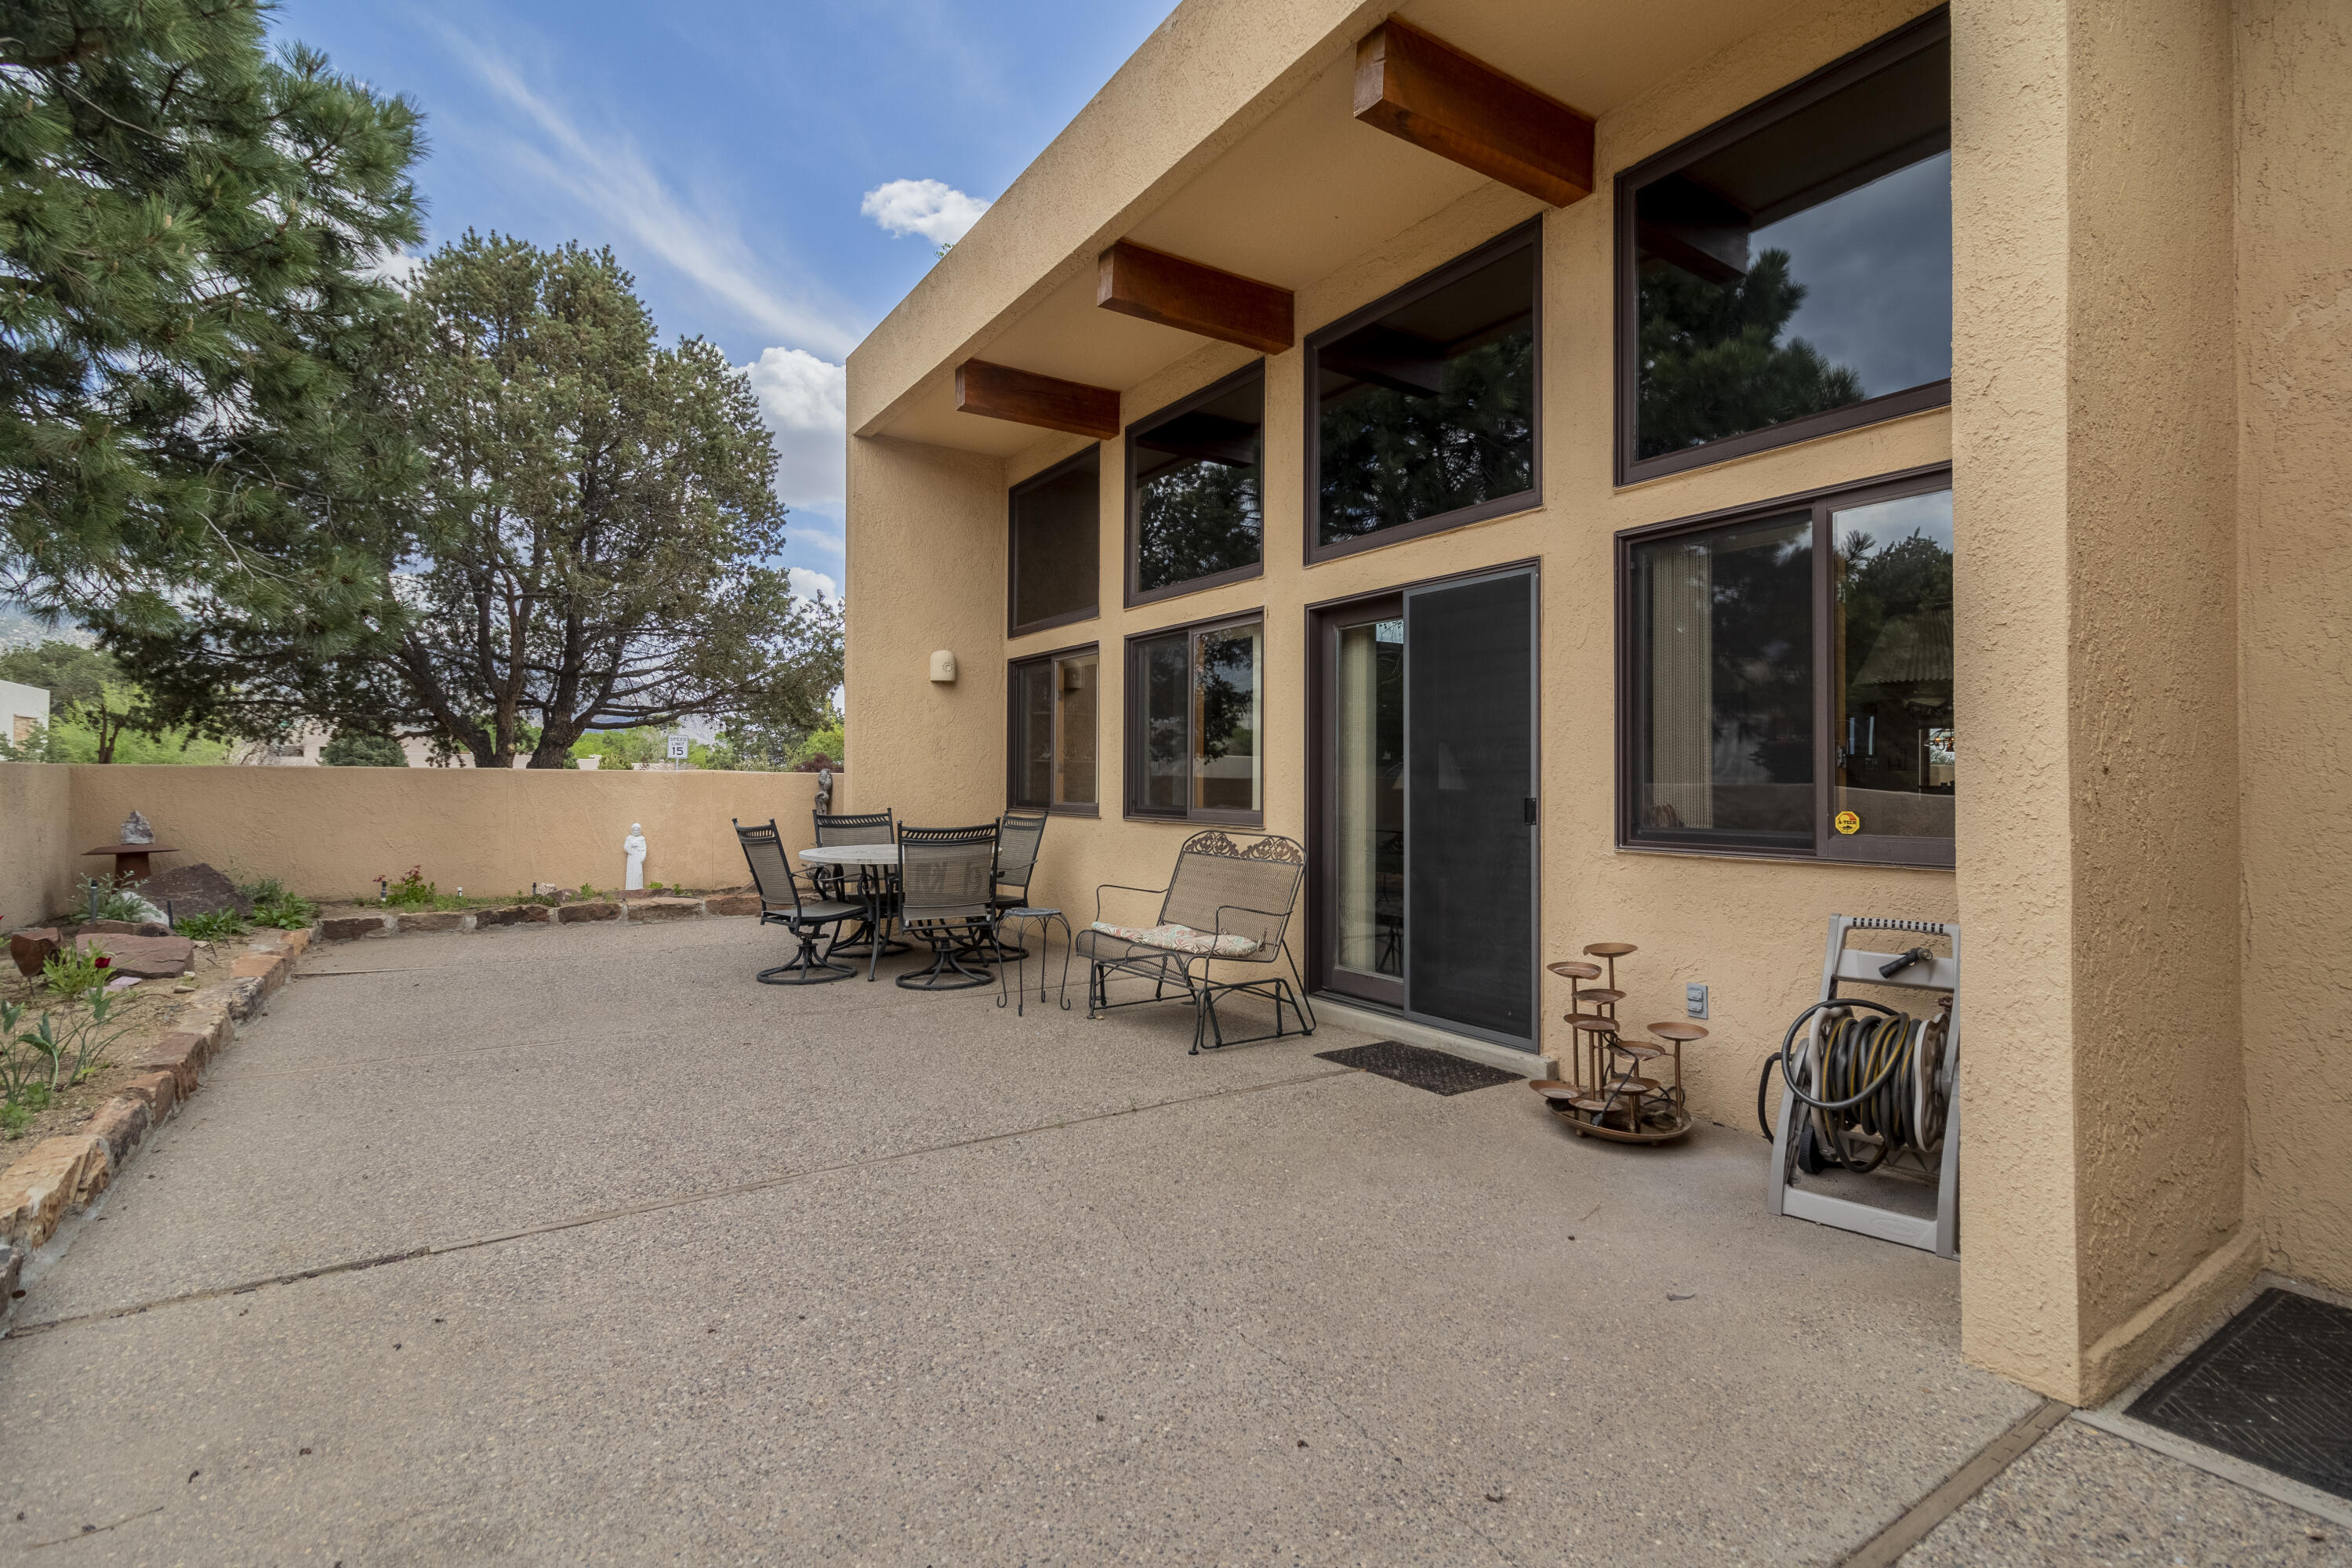 Open Saturday, May 8th 1-3pm. Single level 3bdrm/2 bath  patio home built by Roger Smith . Located in sought after SANDIA HEIGHTS with absolutely STUNNING MOUNTAIN VIEWS AND GORGEOUS SUNSETS. A large  welcoming courtyard leads you  across the threshold into the very light and bright  great room with beam ceilings, gorgeous FP, and wall of windows to enjoy the VIEWS.  Beautiful kitchen with granite countertops, wolf cooktop,  and large eating area. Kitchen also opens to the formal dining room. Primary suite which offers a 2 way FP  & extra flex space perfect for a nursery/office or sitting area, with it's own access to the covered patio and pretty backyard to enjoy those sunsets.   Extra wide 2 car garage w/2 work benches. Radiant Heat & Water Softener, Hot Tub is negotiable. Very Nice Hom